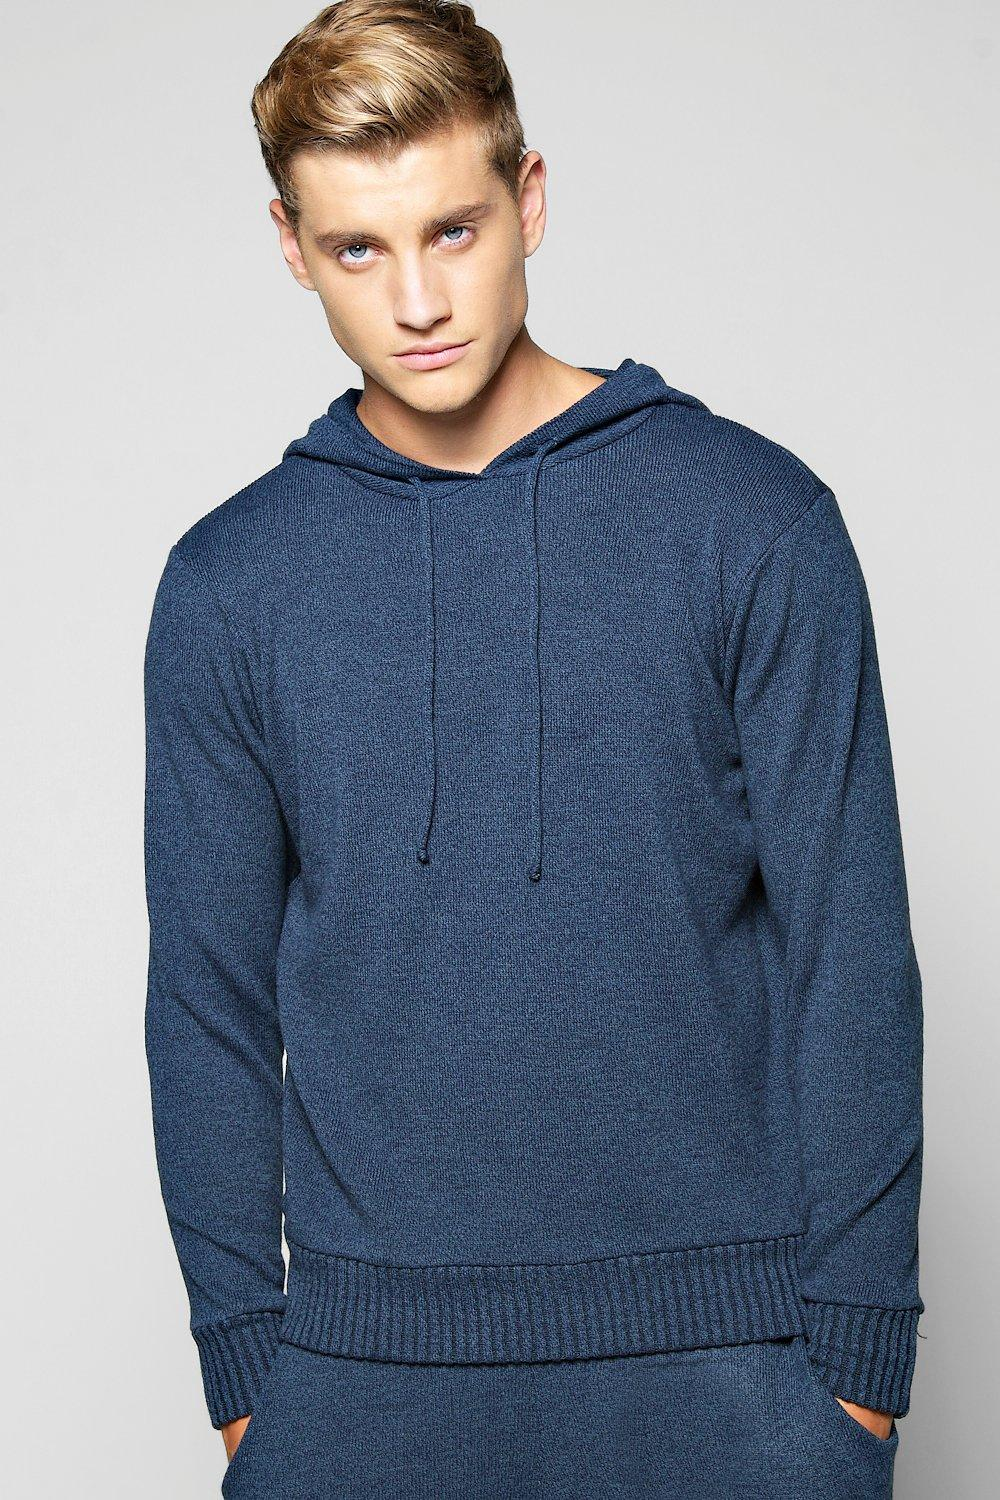 Mixed Yarn Hooded Tracksuit Top